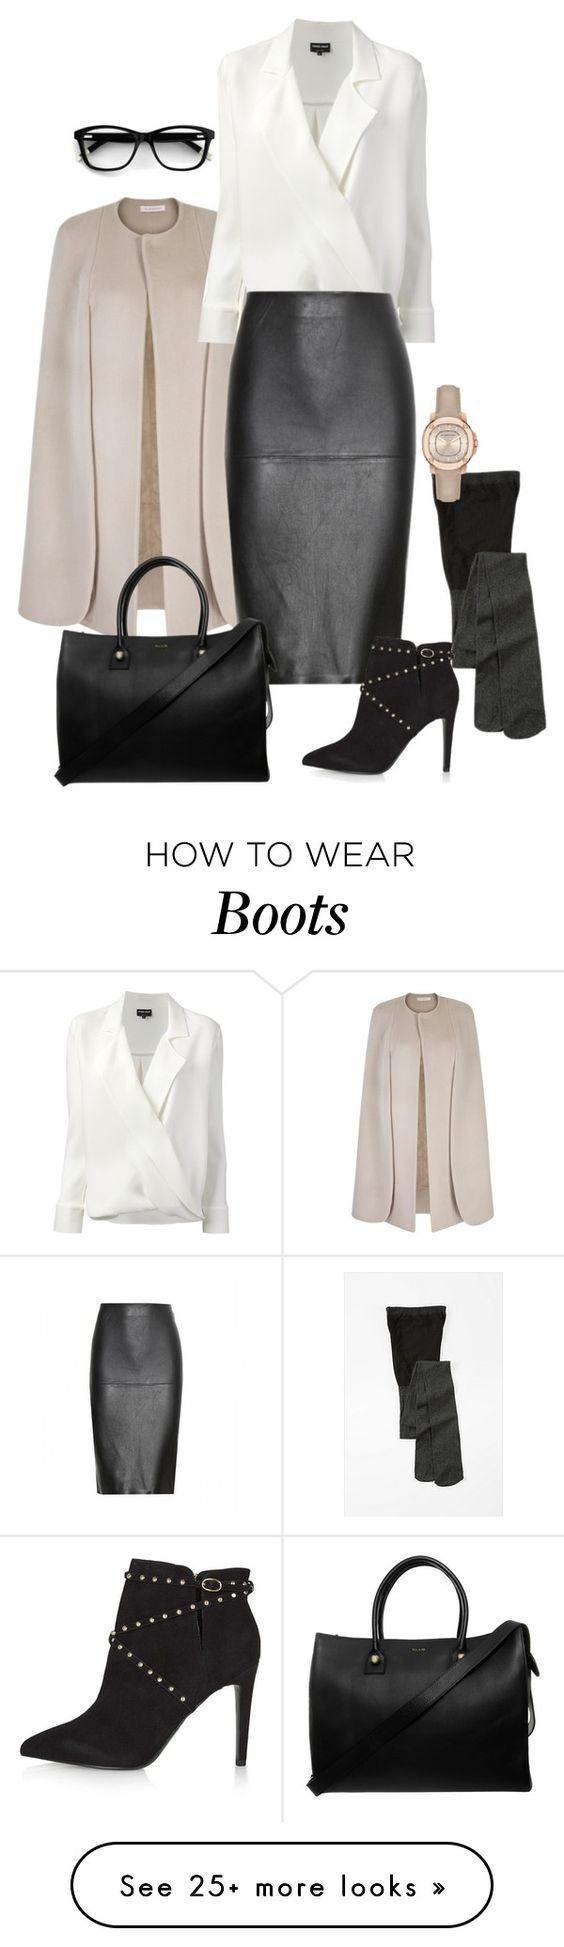 """""""Untitled #166"""" by sandystyle888 on Polyvore featuring Giorgio Armani, By Malene Birger, Topshop, Paul & Joe and Burberry"""